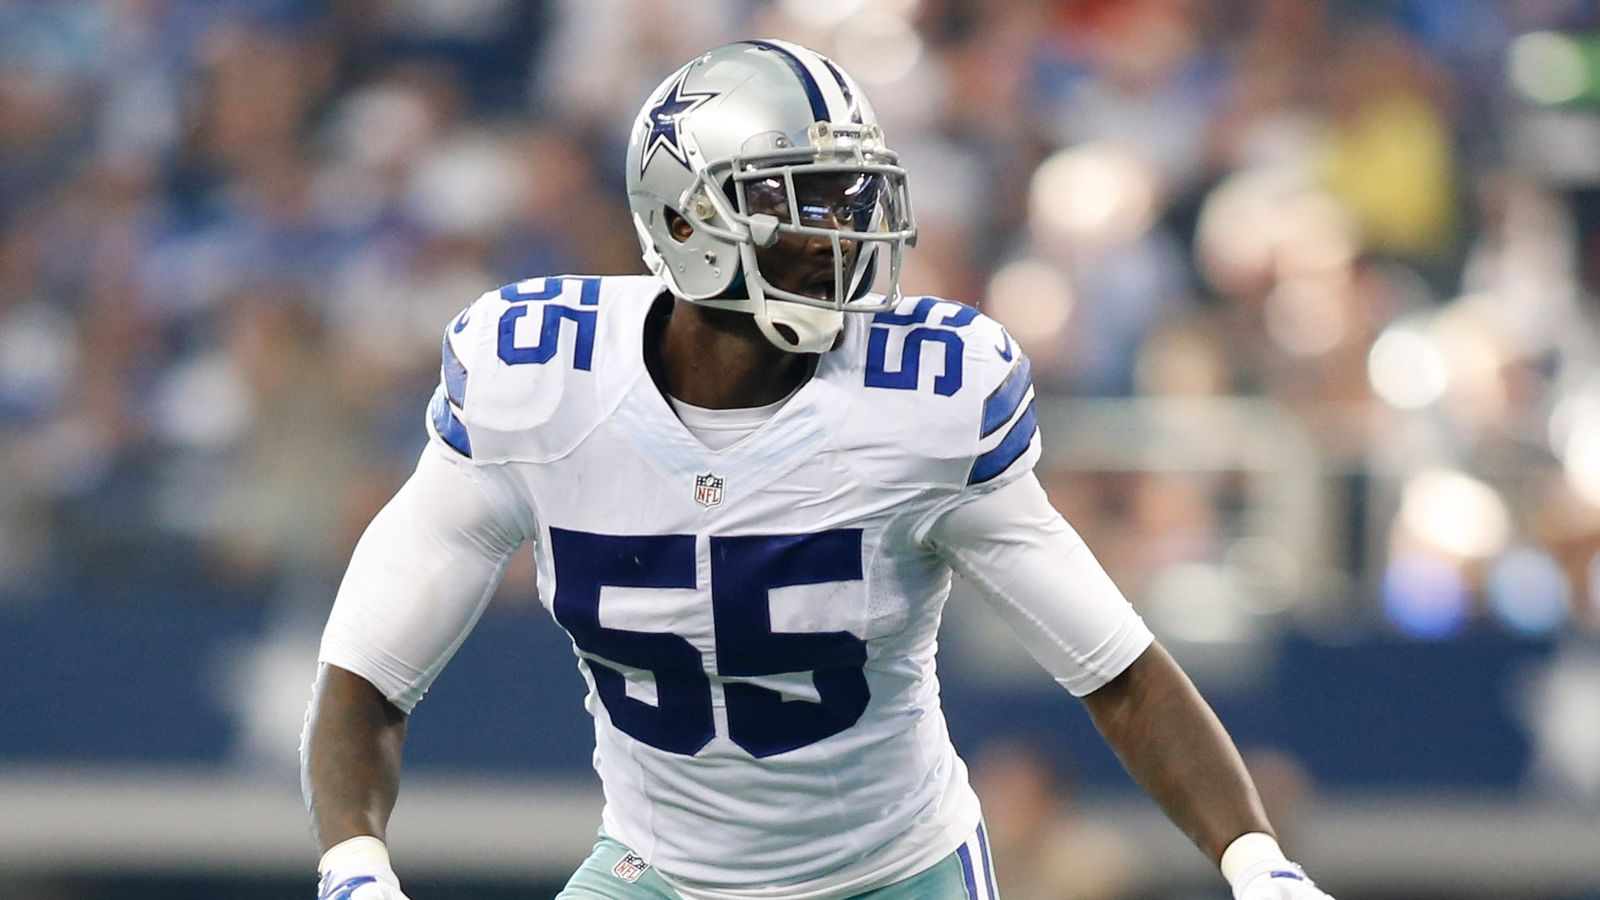 Latest Cowboys headlines: Anthony Spencer has a visit with an unnamed team today; The Cowboys have traded proposals with Rolando McClain's agent; George Selvie is drawing interest from the Vikings.